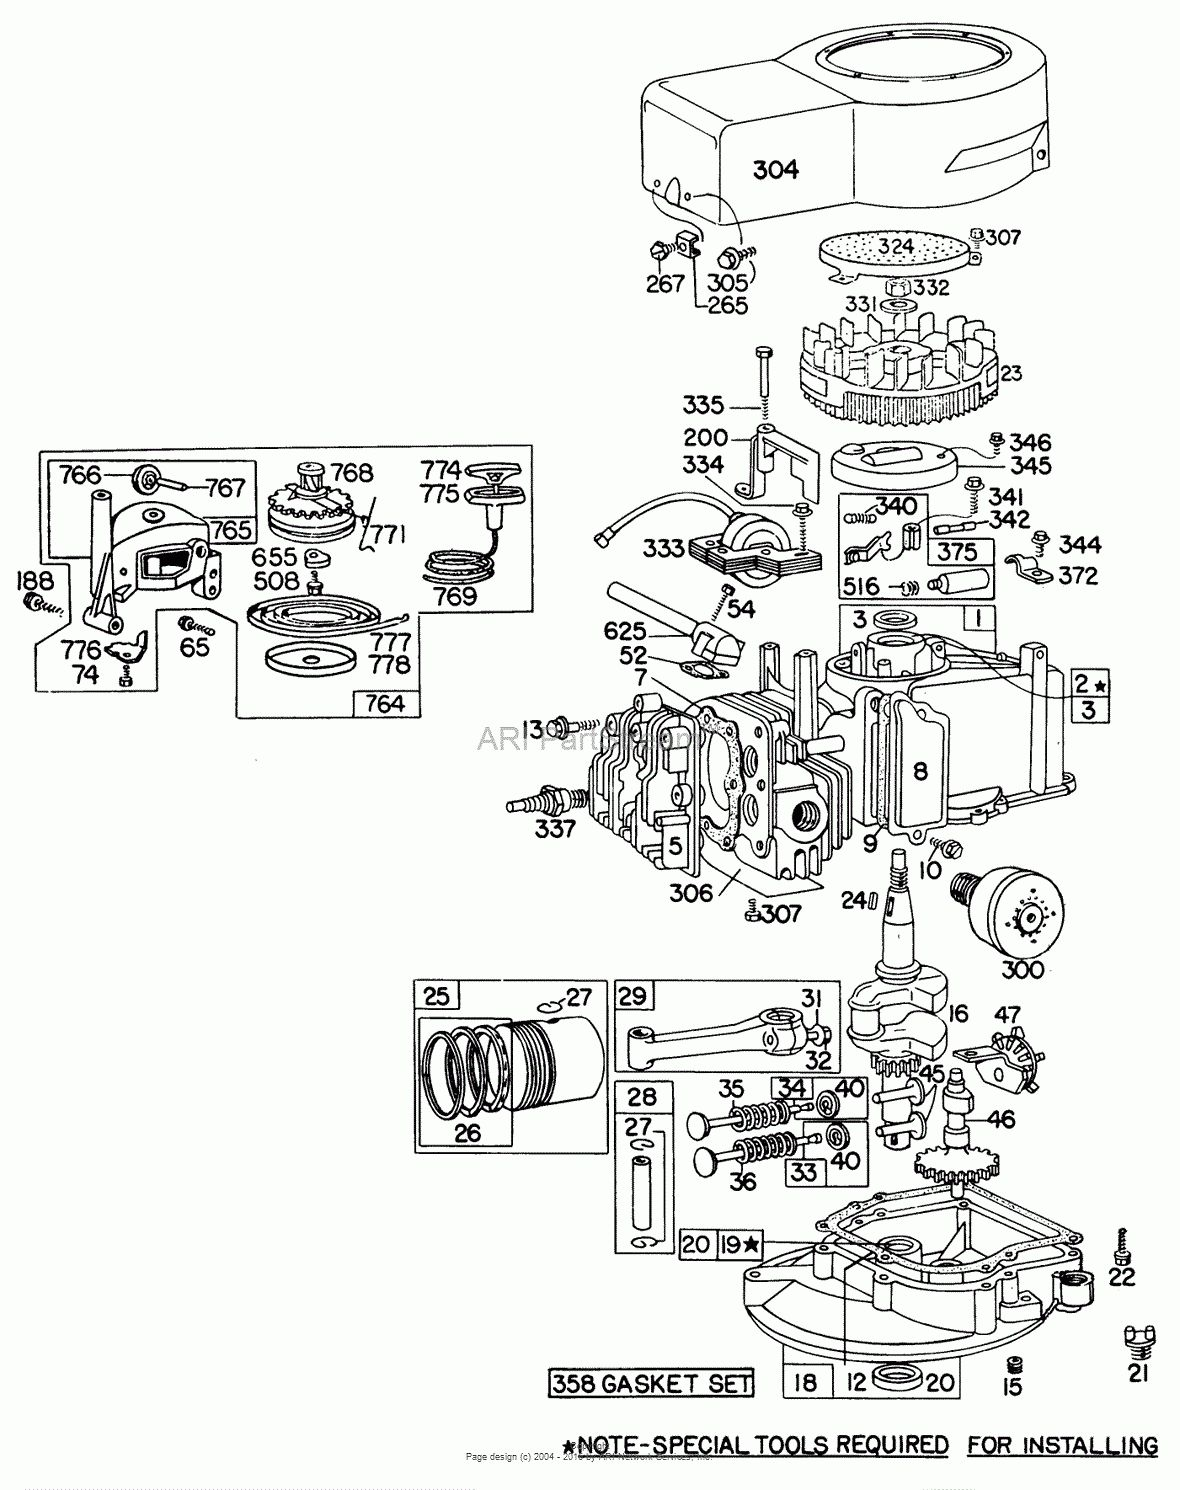 medium resolution of diagram of briggs and stratton lawn mower engine wiring diagram blogbriggs stratton engine parts diagram briggs